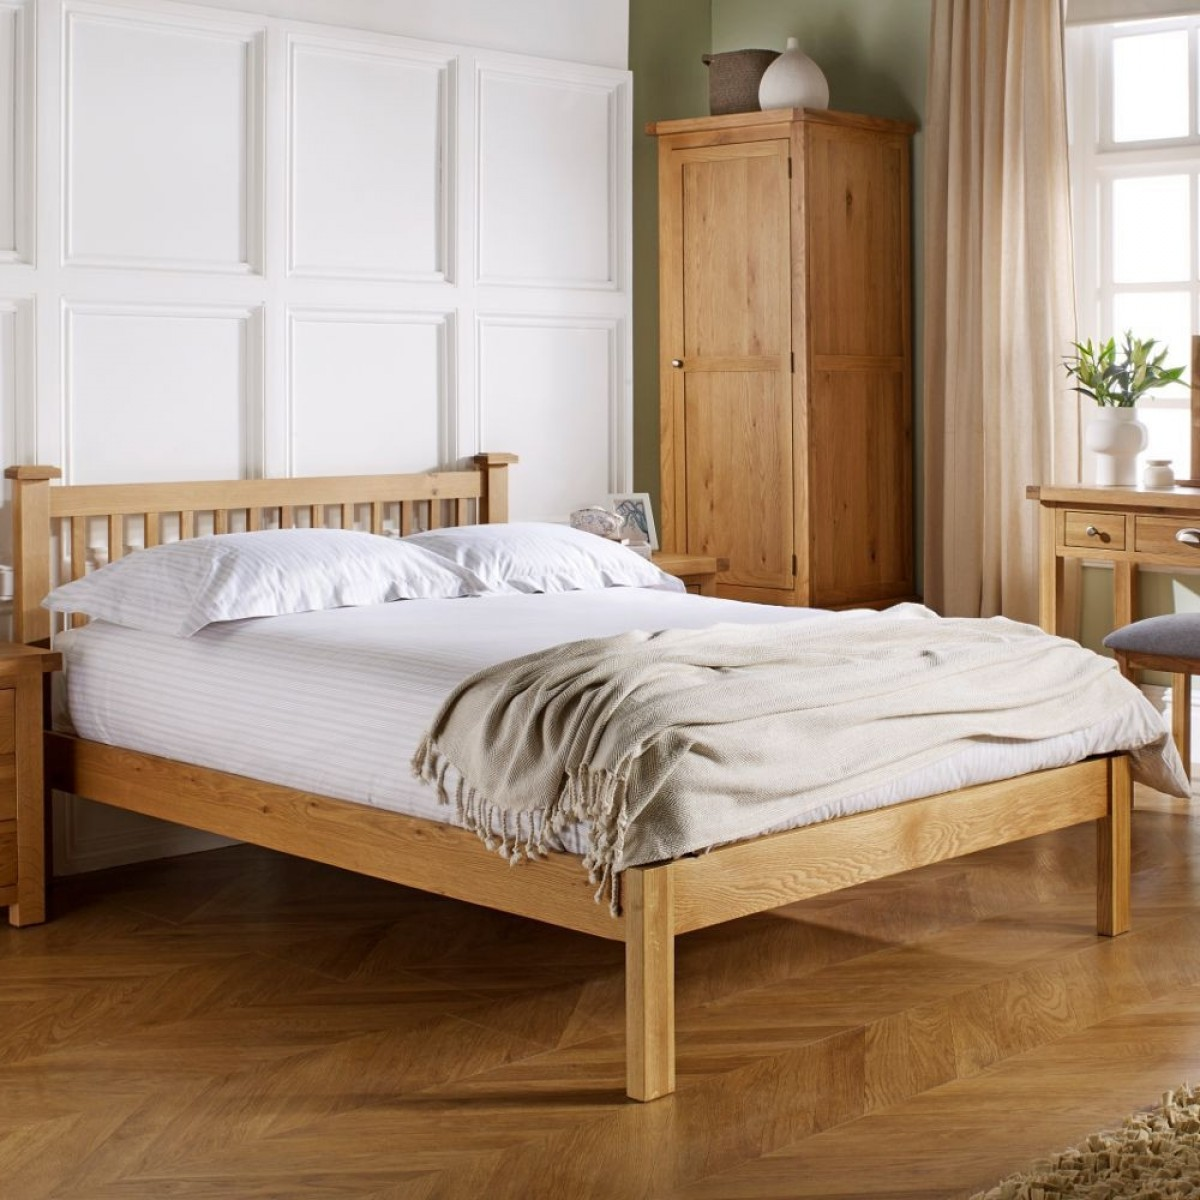 Woburn Oak Wooden Bed